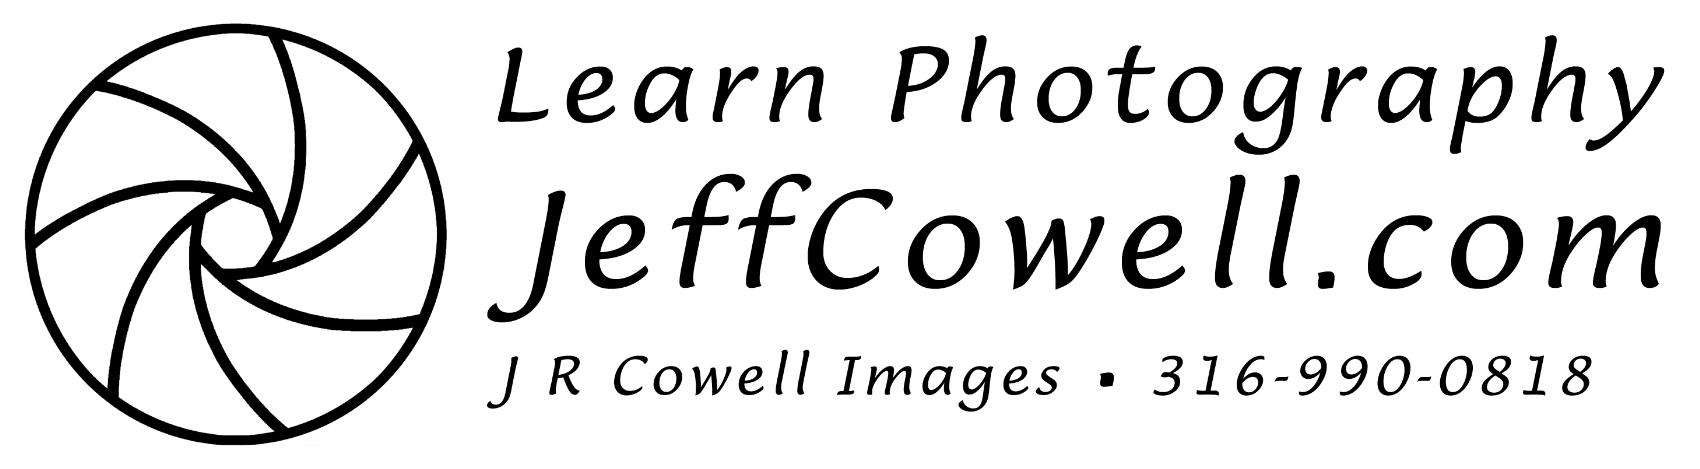 J R Cowell Images